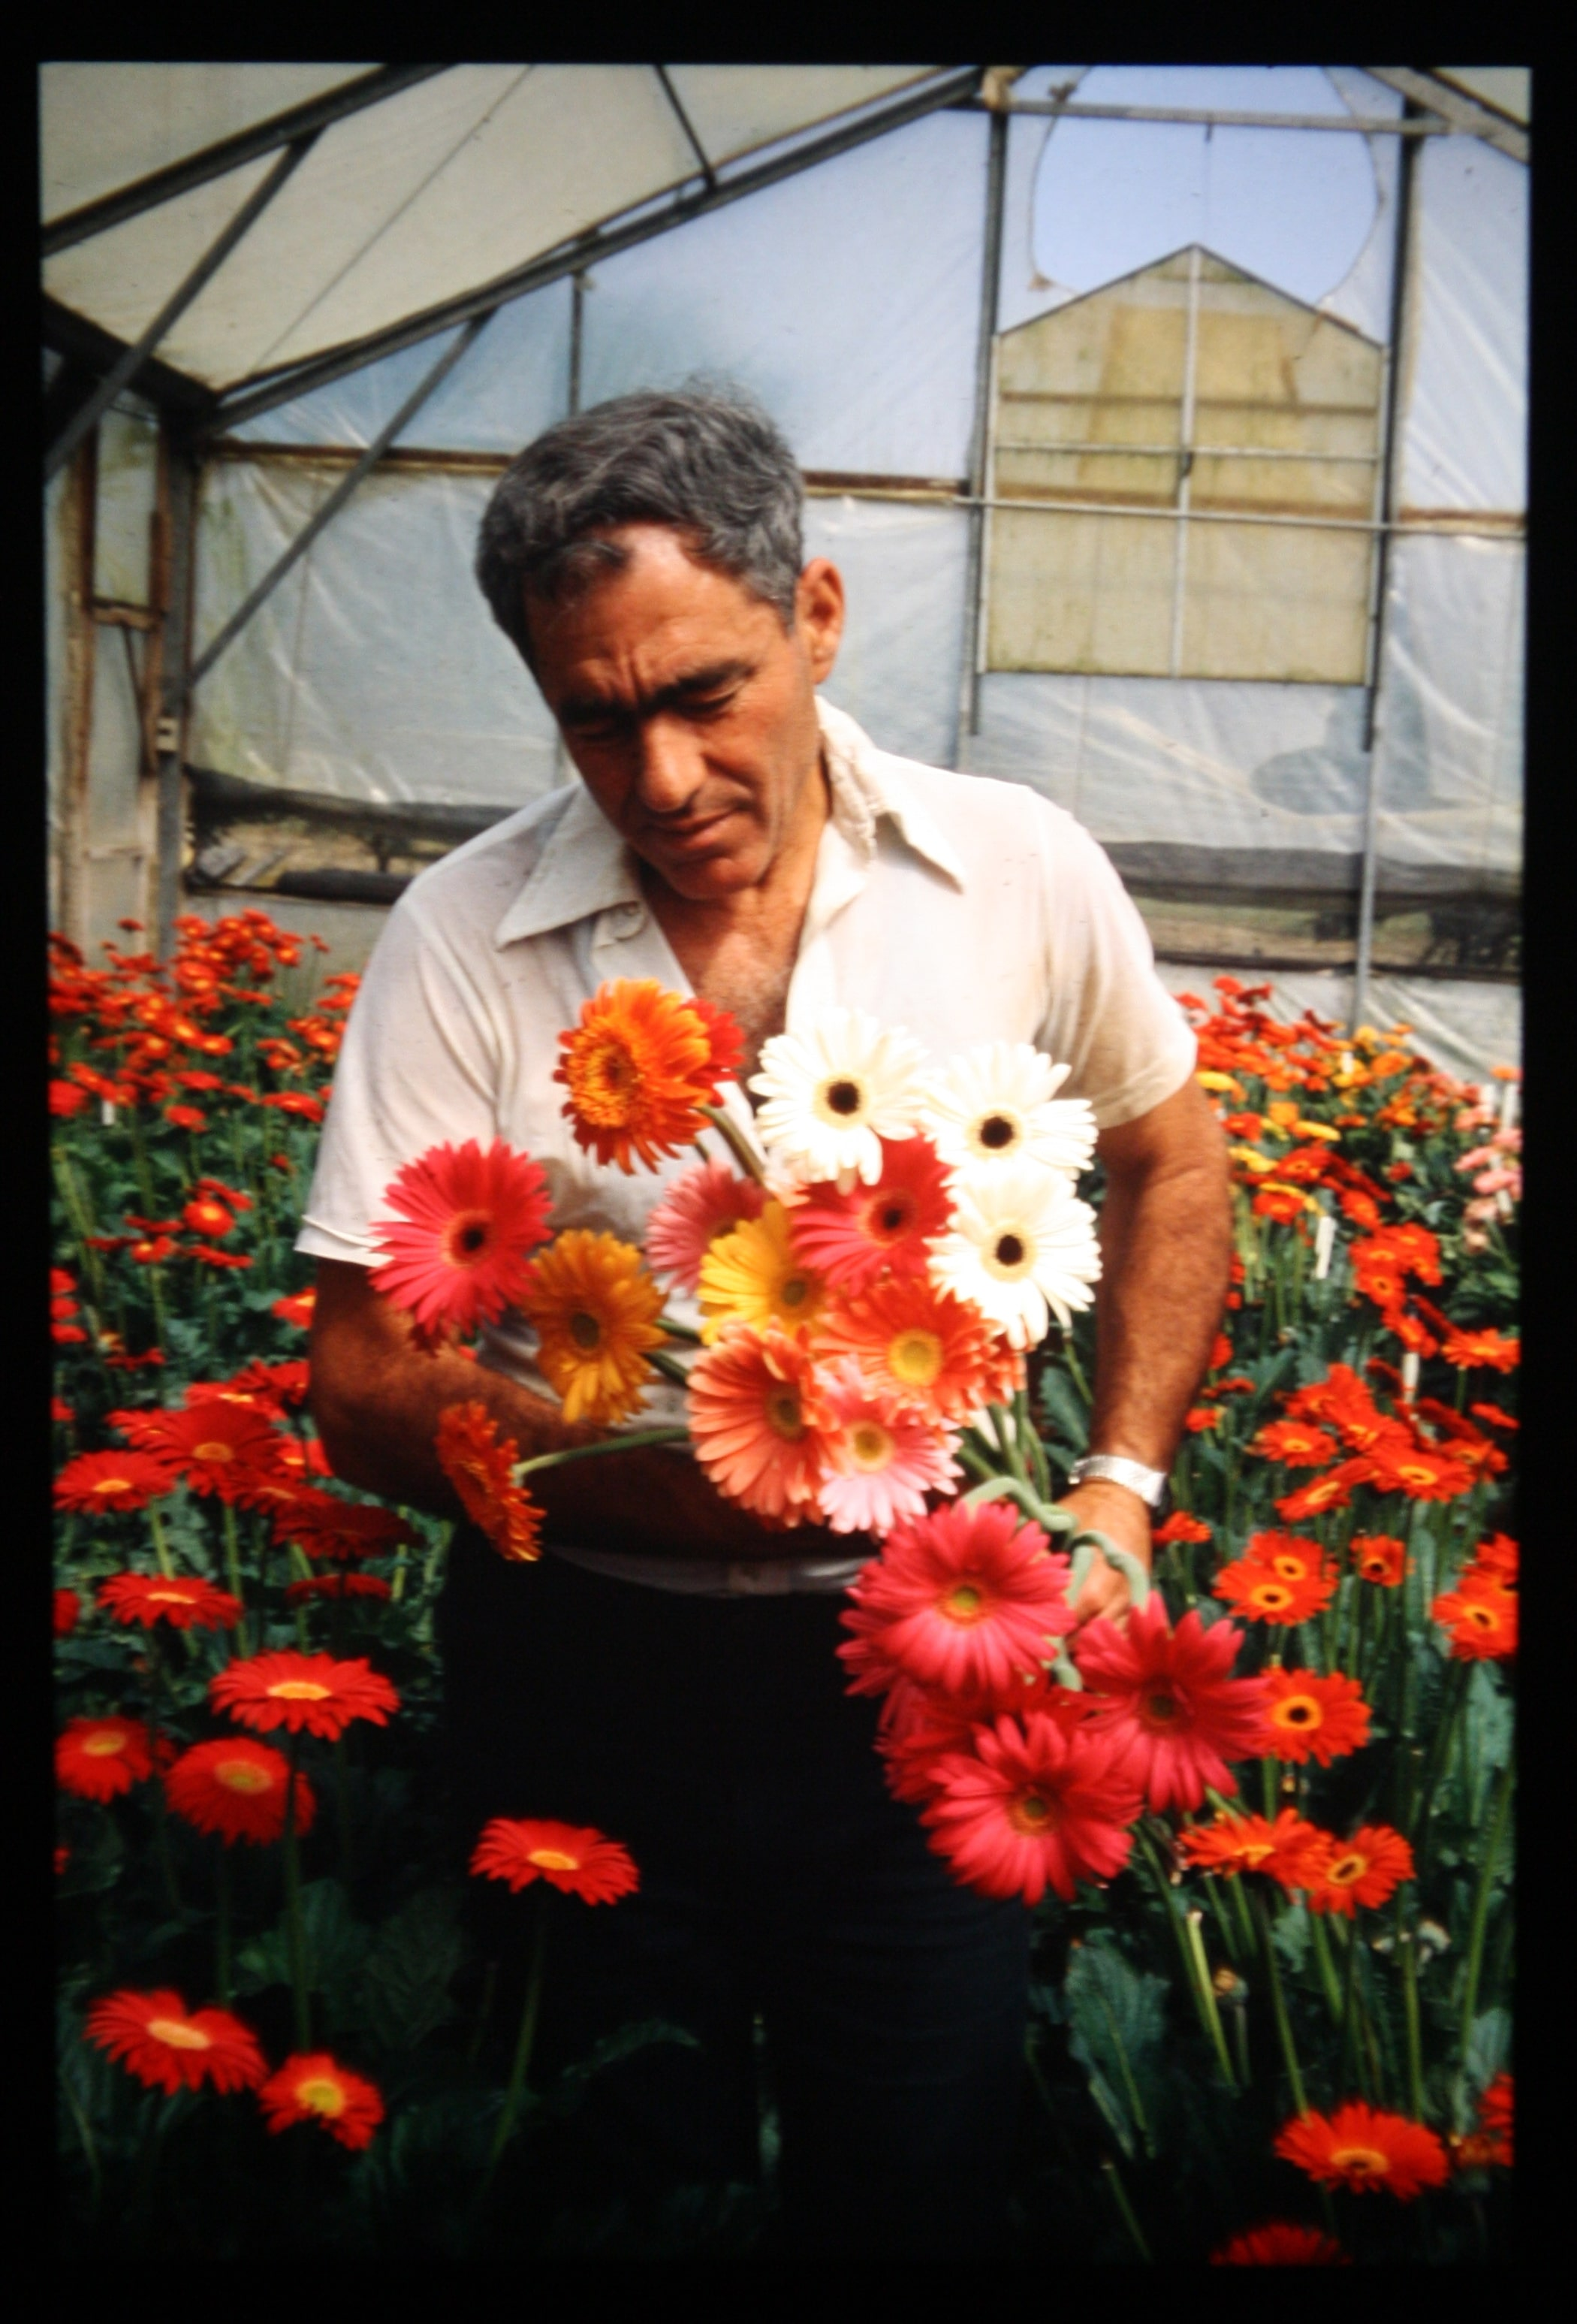 Dr. Yosef Shuv at the Ganei Am greenhouse, 1983